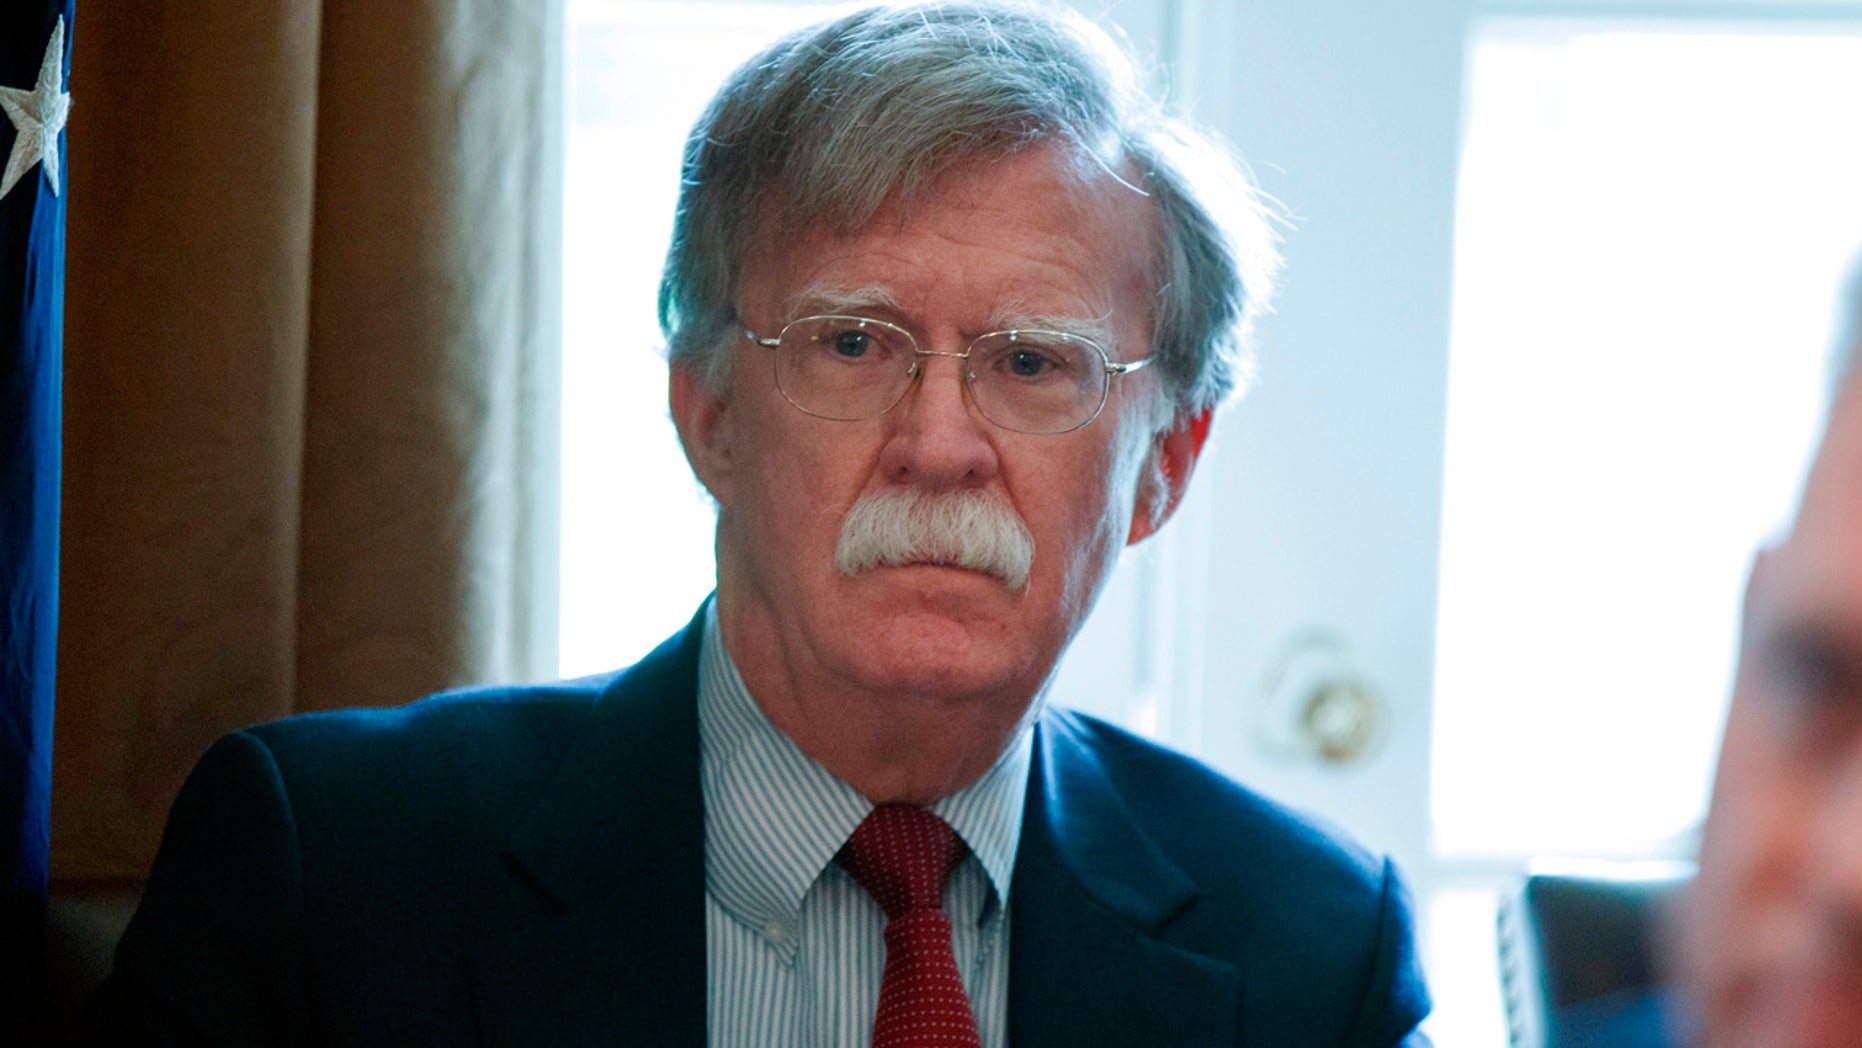 National security adviser John Bolton spoke exclusively Sunday to Fox News about the president's upcoming Russia summit.